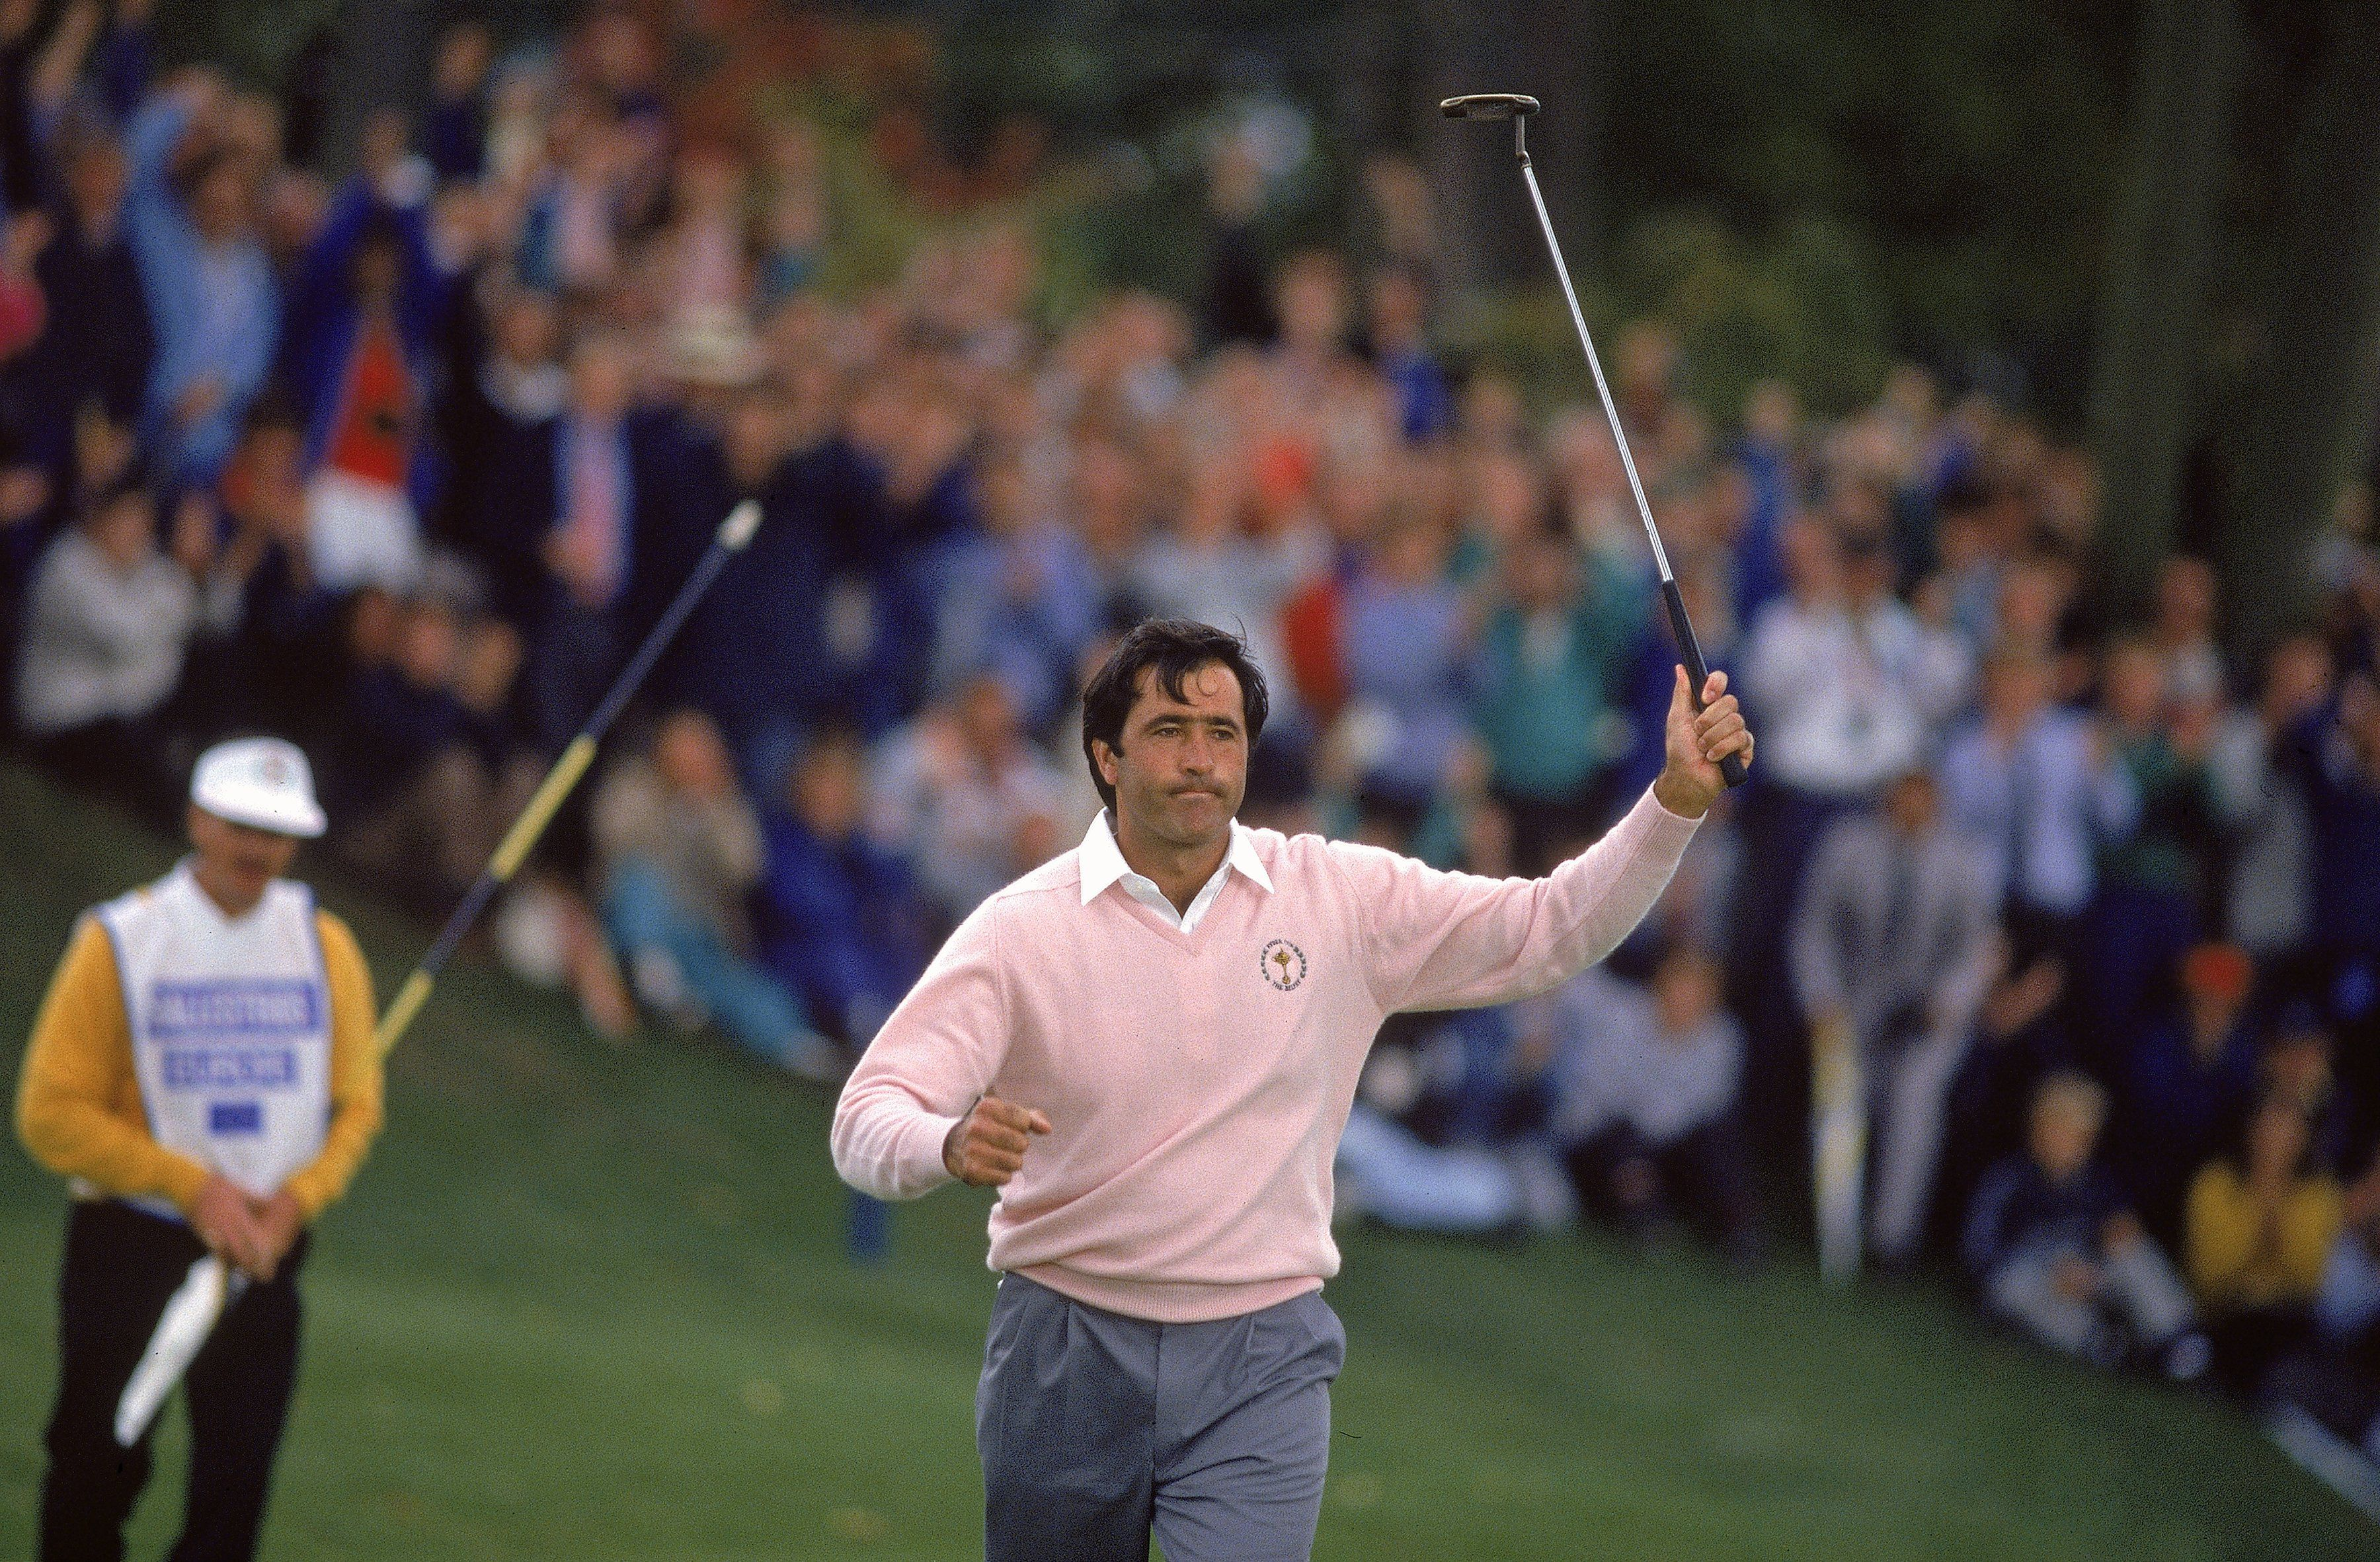 Seve Ballesteros of the European team during the 1989 Ryder Cup at The Belfry in Sutton Coldfield, England